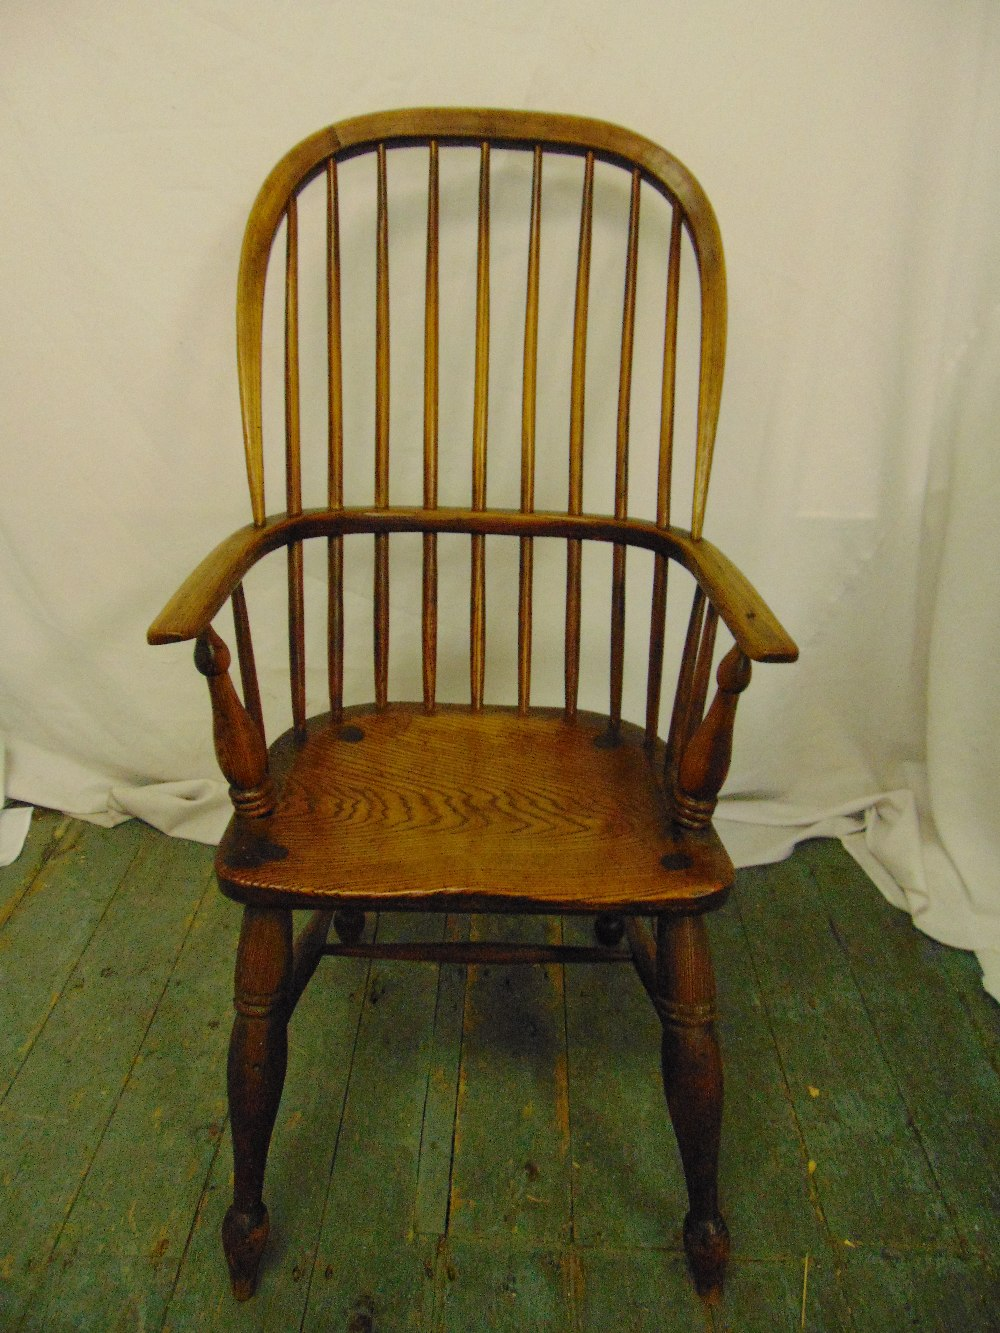 Lot 11 - A 19th century oak Windsor chair on turned cylindrical legs